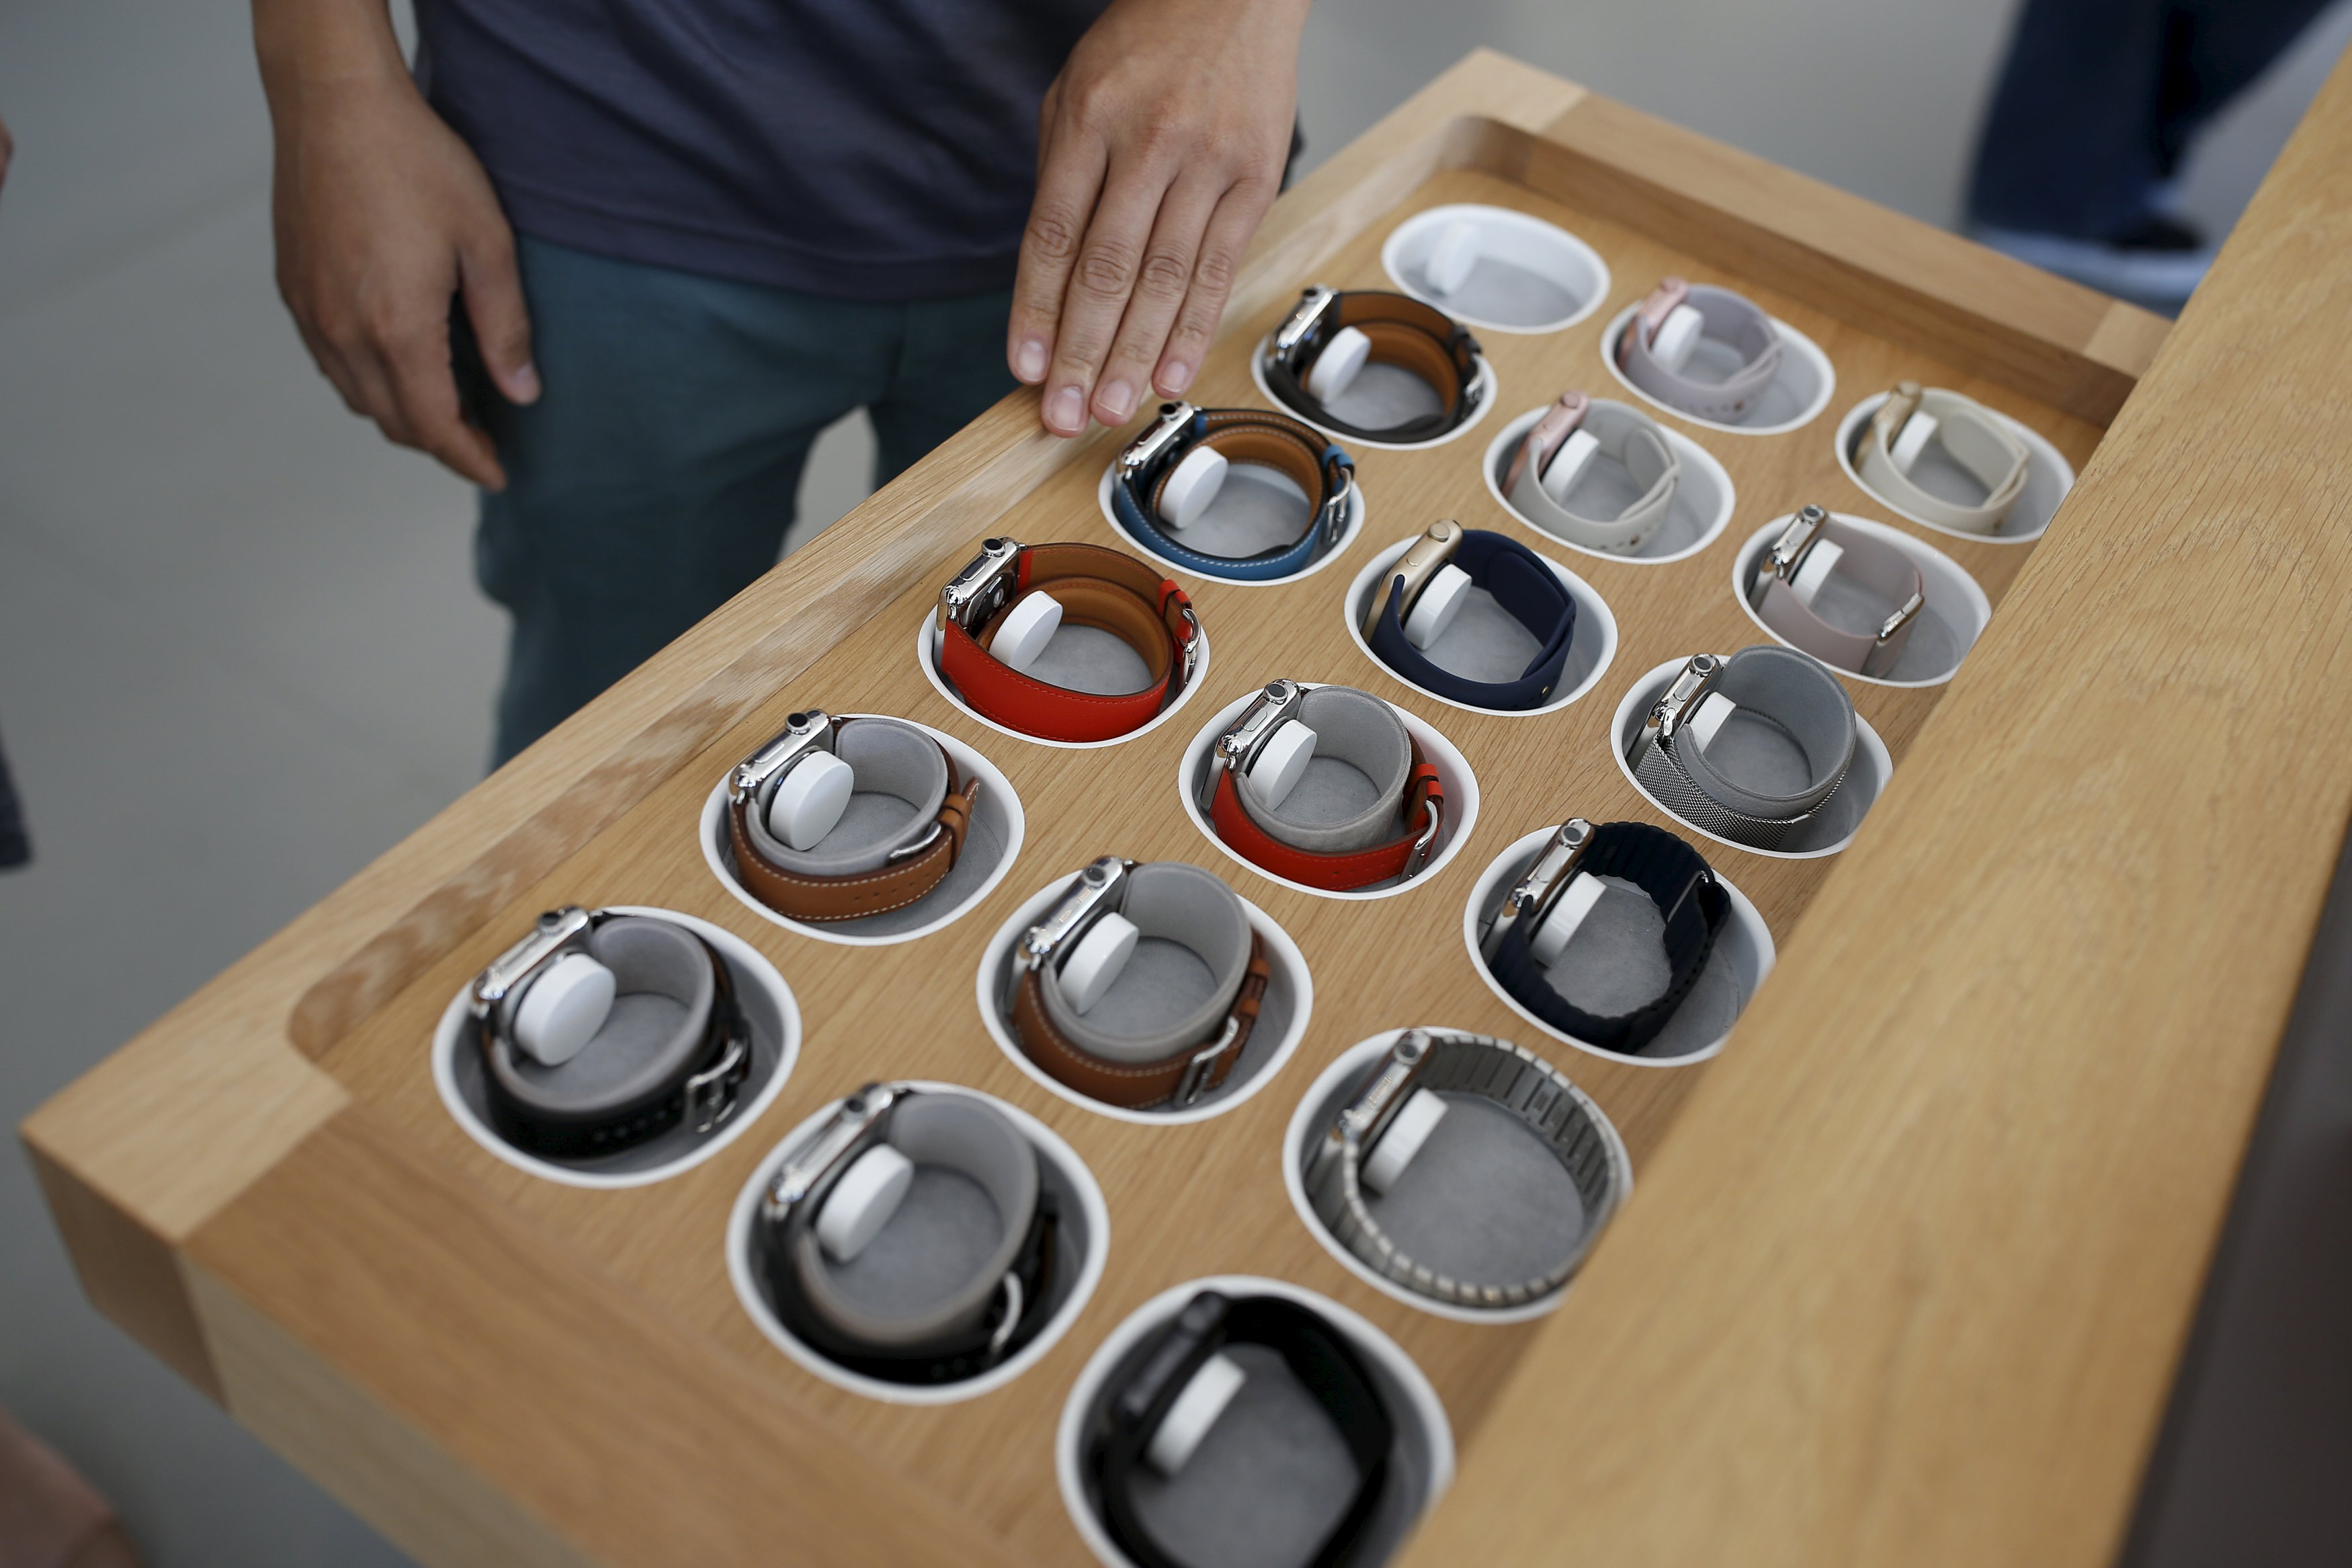 An Apple employee opens a drawer of Apple Watches at the Apple store in Stanford, California October 5, 2015. Photo: Reuters